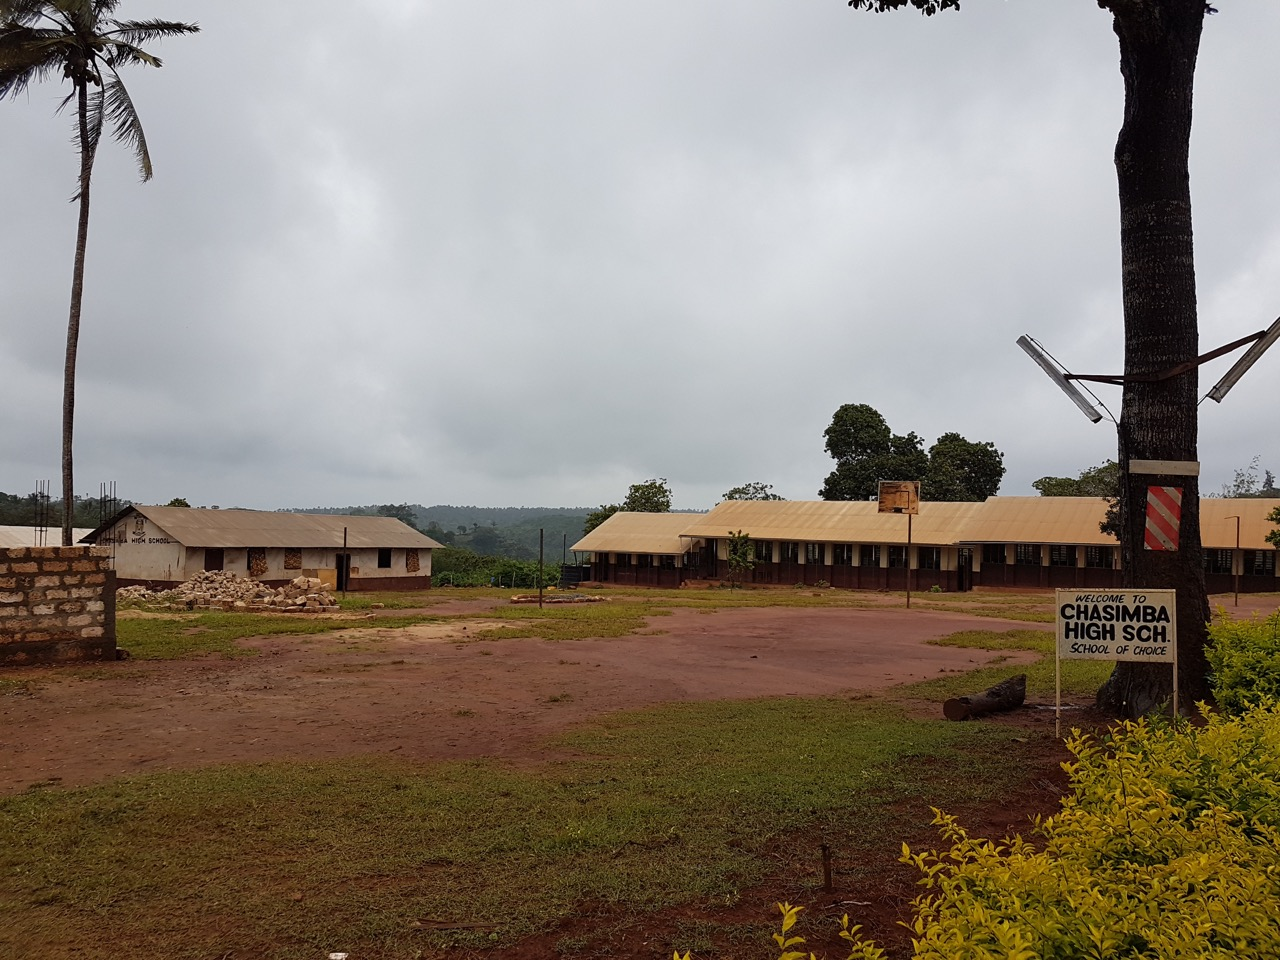 Chasimba High School